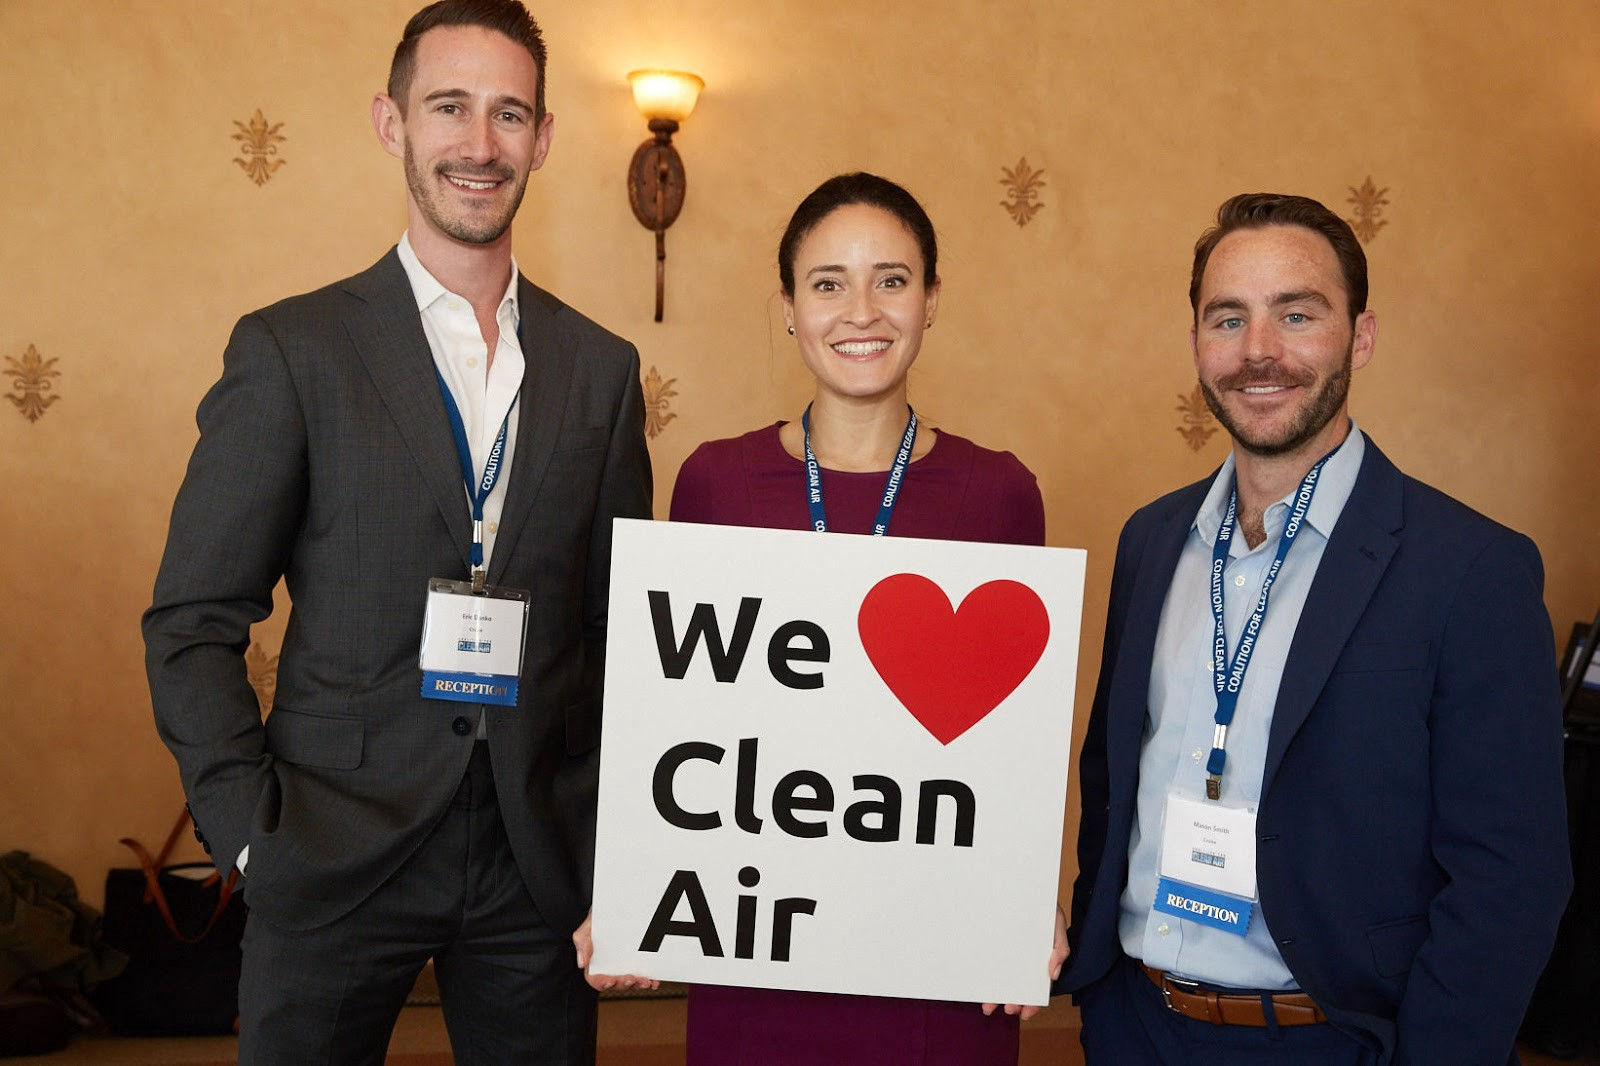 """Eric Danko, Candice Plotkin, and Mason Smith of Cruise pose with a sign that reads, """"We heart clean air."""""""